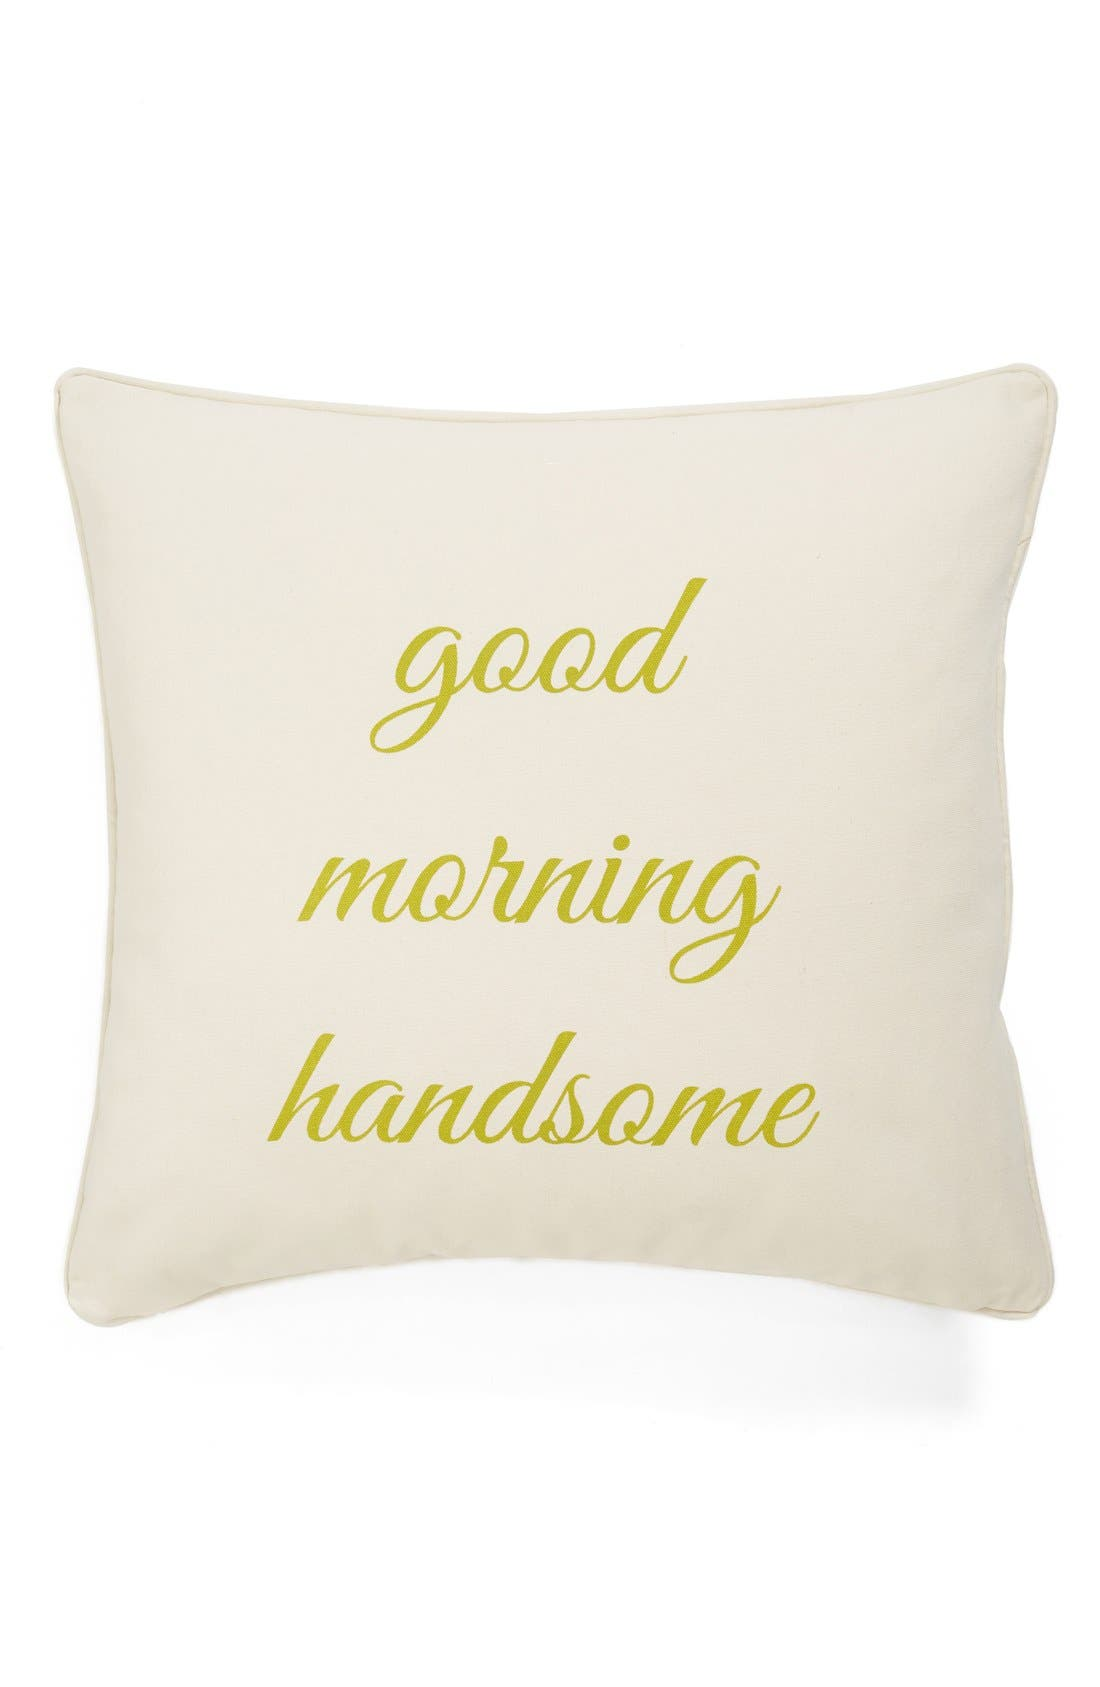 'Hey There Beautiful/Good Morning Handsome' Reversible Decorative Pillow,                             Main thumbnail 1, color,                             900